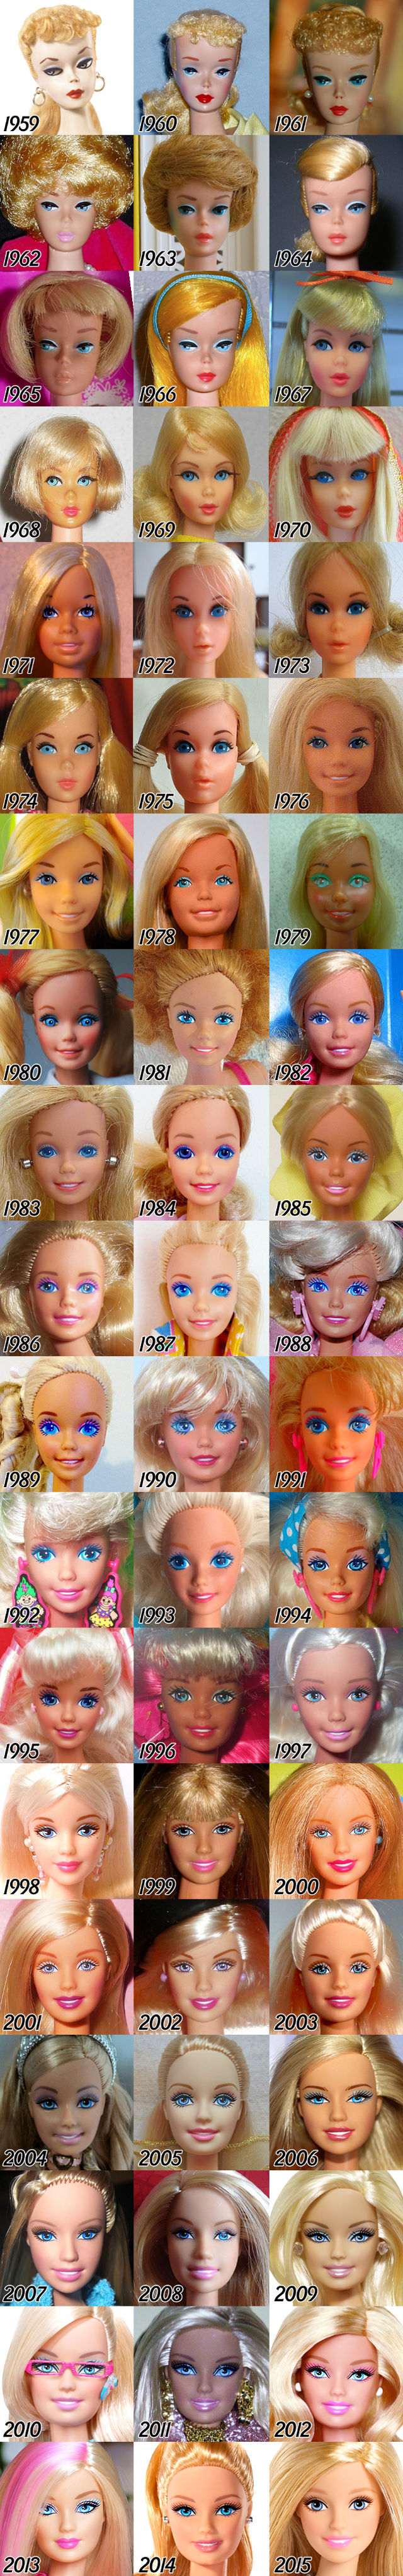 evolution of barbie face